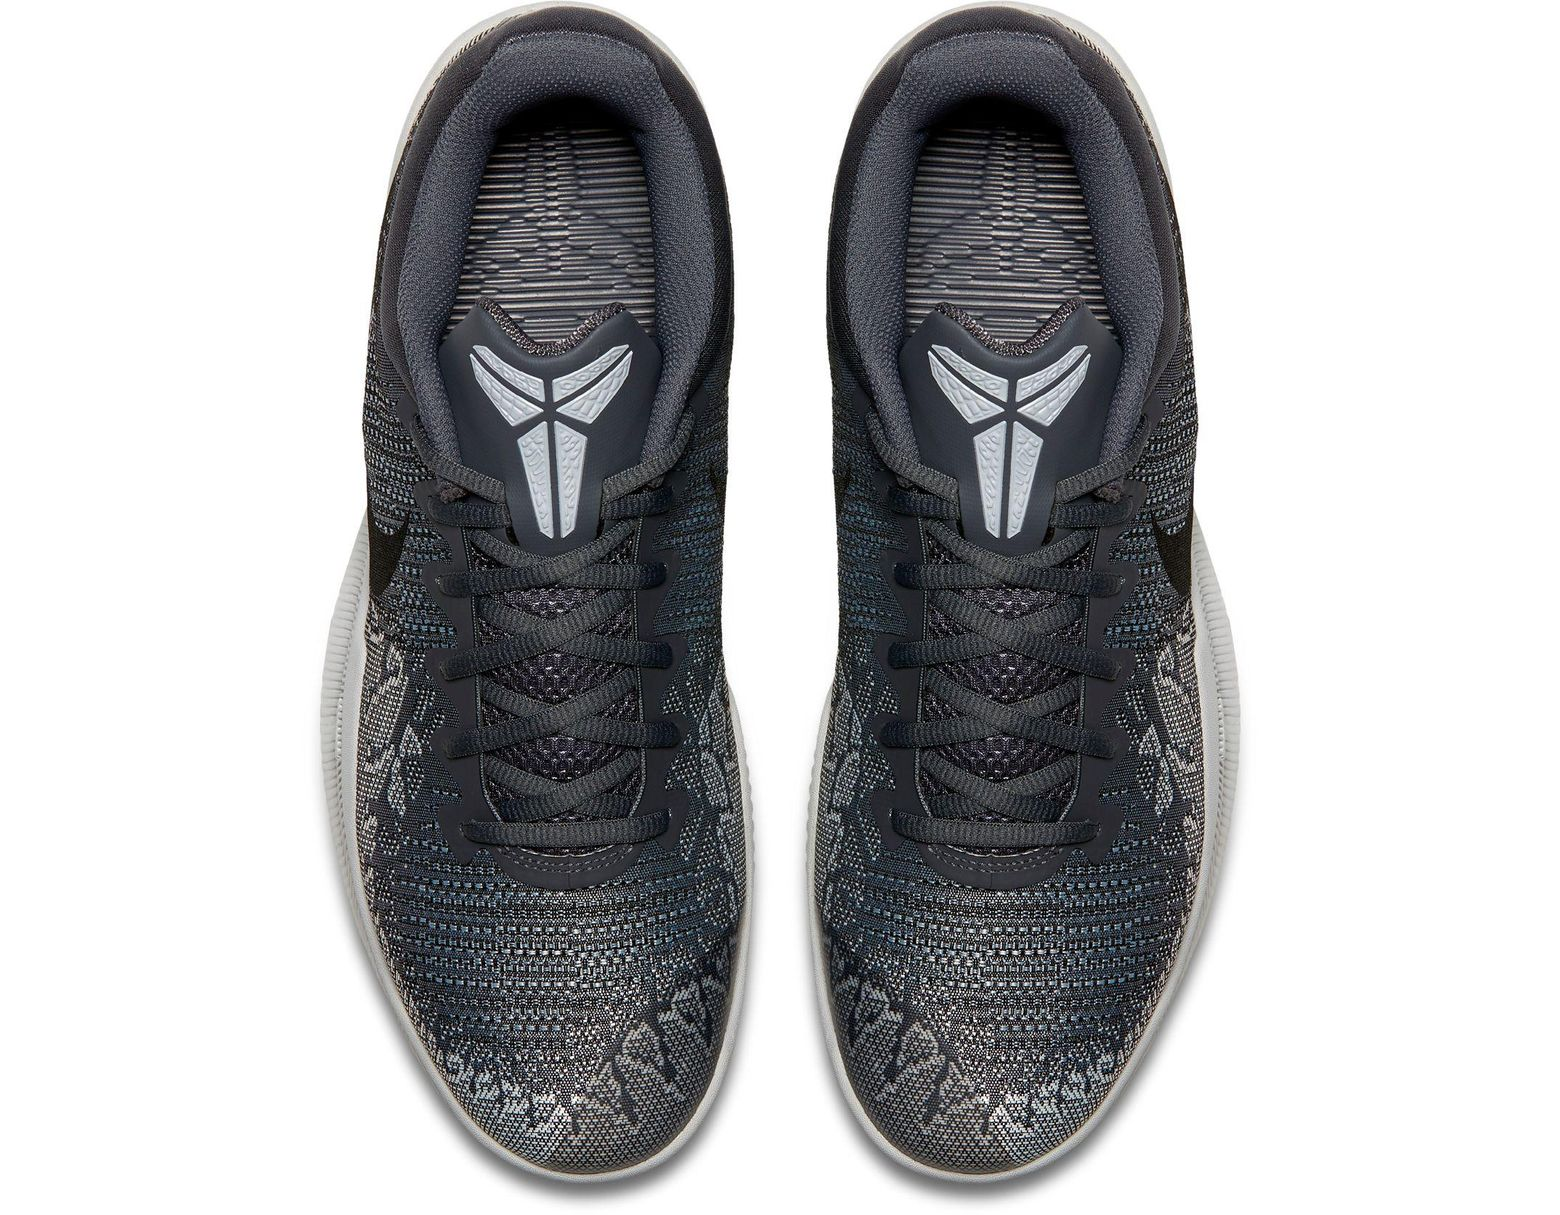 reputable site ded1a 8c273 Nike Kobe Mamba Rage Basketball Shoes in Gray for Men - Lyst